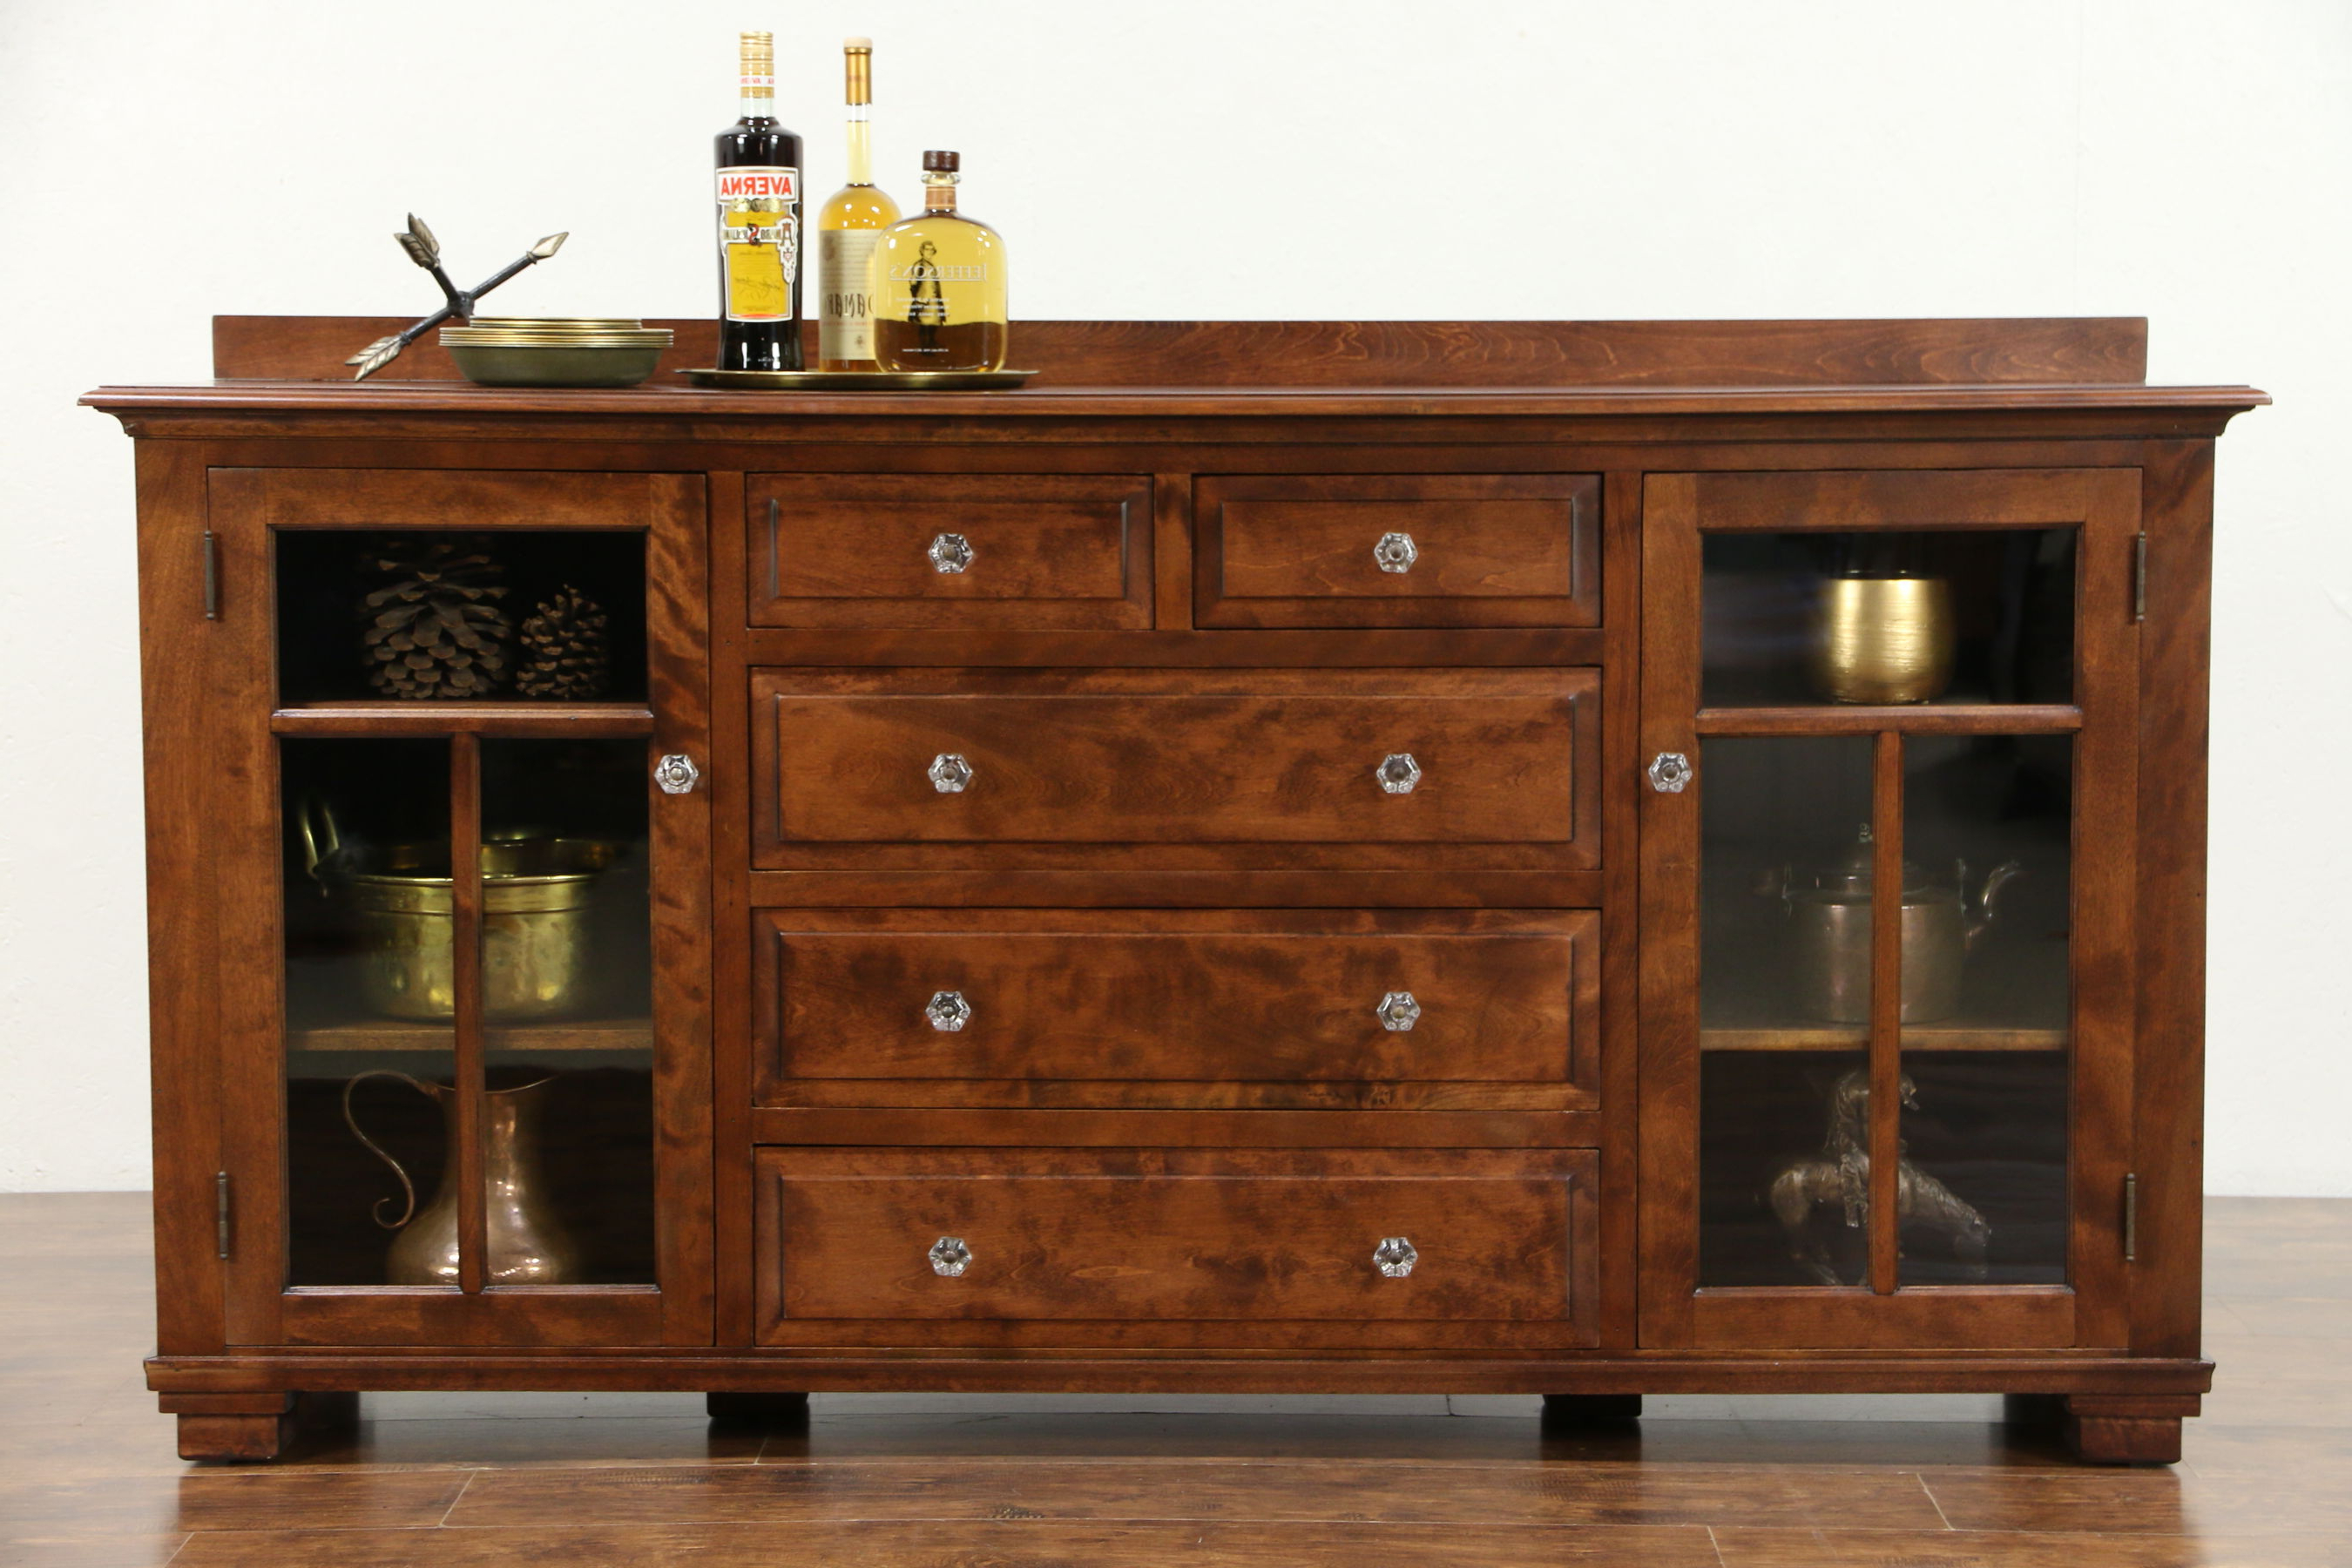 Newest Sold – Craftsman 1910 Antique Sideboard Cabinet, Tv Console – Harp With Regard To Craftsman Sideboards (Gallery 13 of 20)